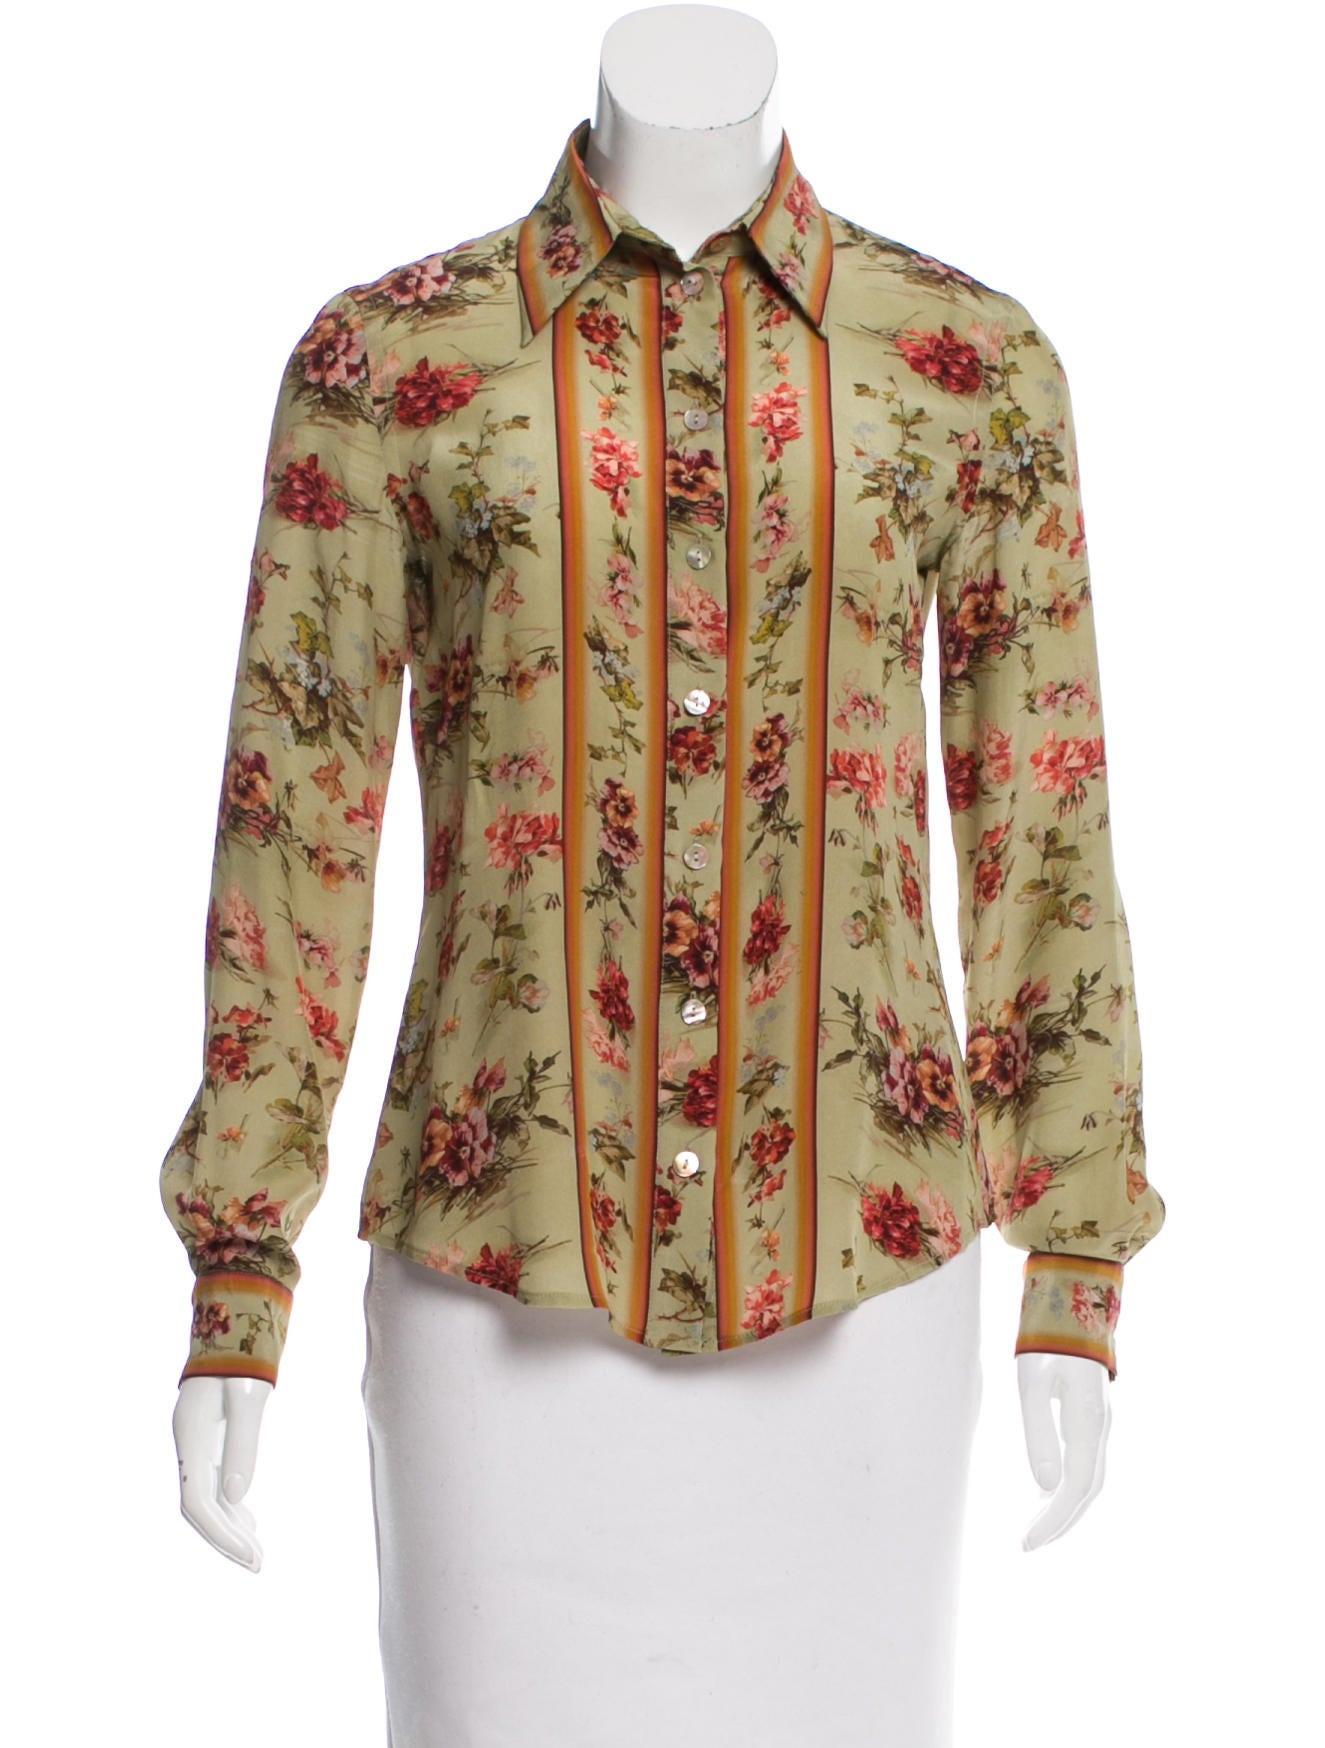 Jean paul gaultier floral print silk blouse clothing for Jean paul gaultier clothing